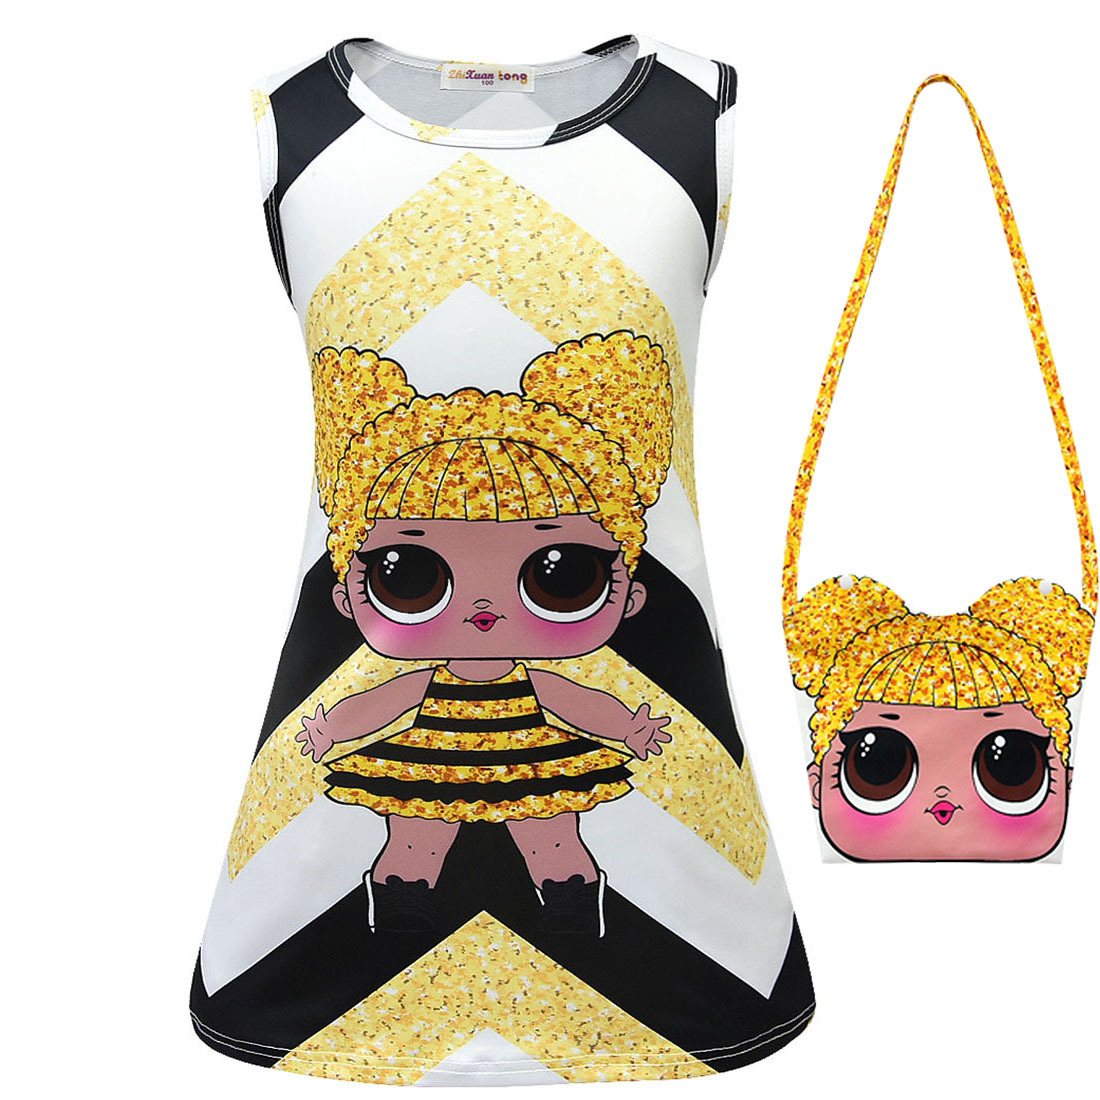 Kids Dresses For Girls 2019 Summer Cartoon Lol Dress Sleeveless Flower Print Toddler Children's Lol Dolls Clothes For Girls